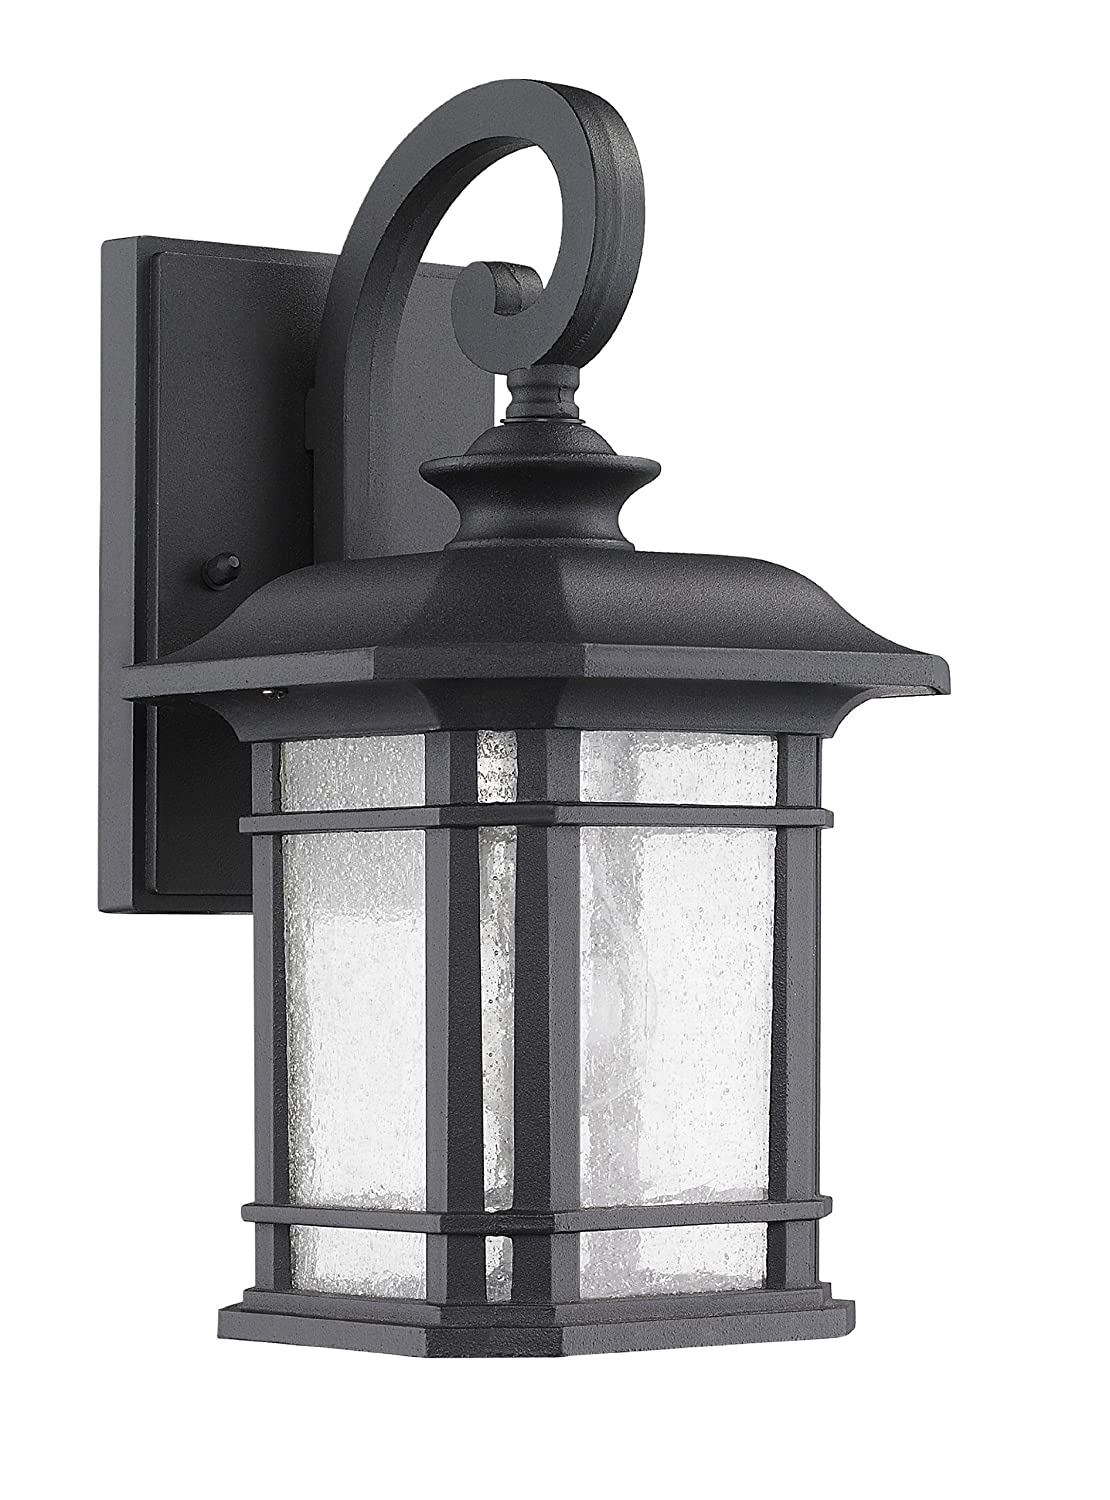 Chloe Lighting Ch22021bk17 Od1 Franklin Transitional 1 Light Black Outdoor Wall Sconce 17 Height Home Outdoor Electric Lighting Amazon Com